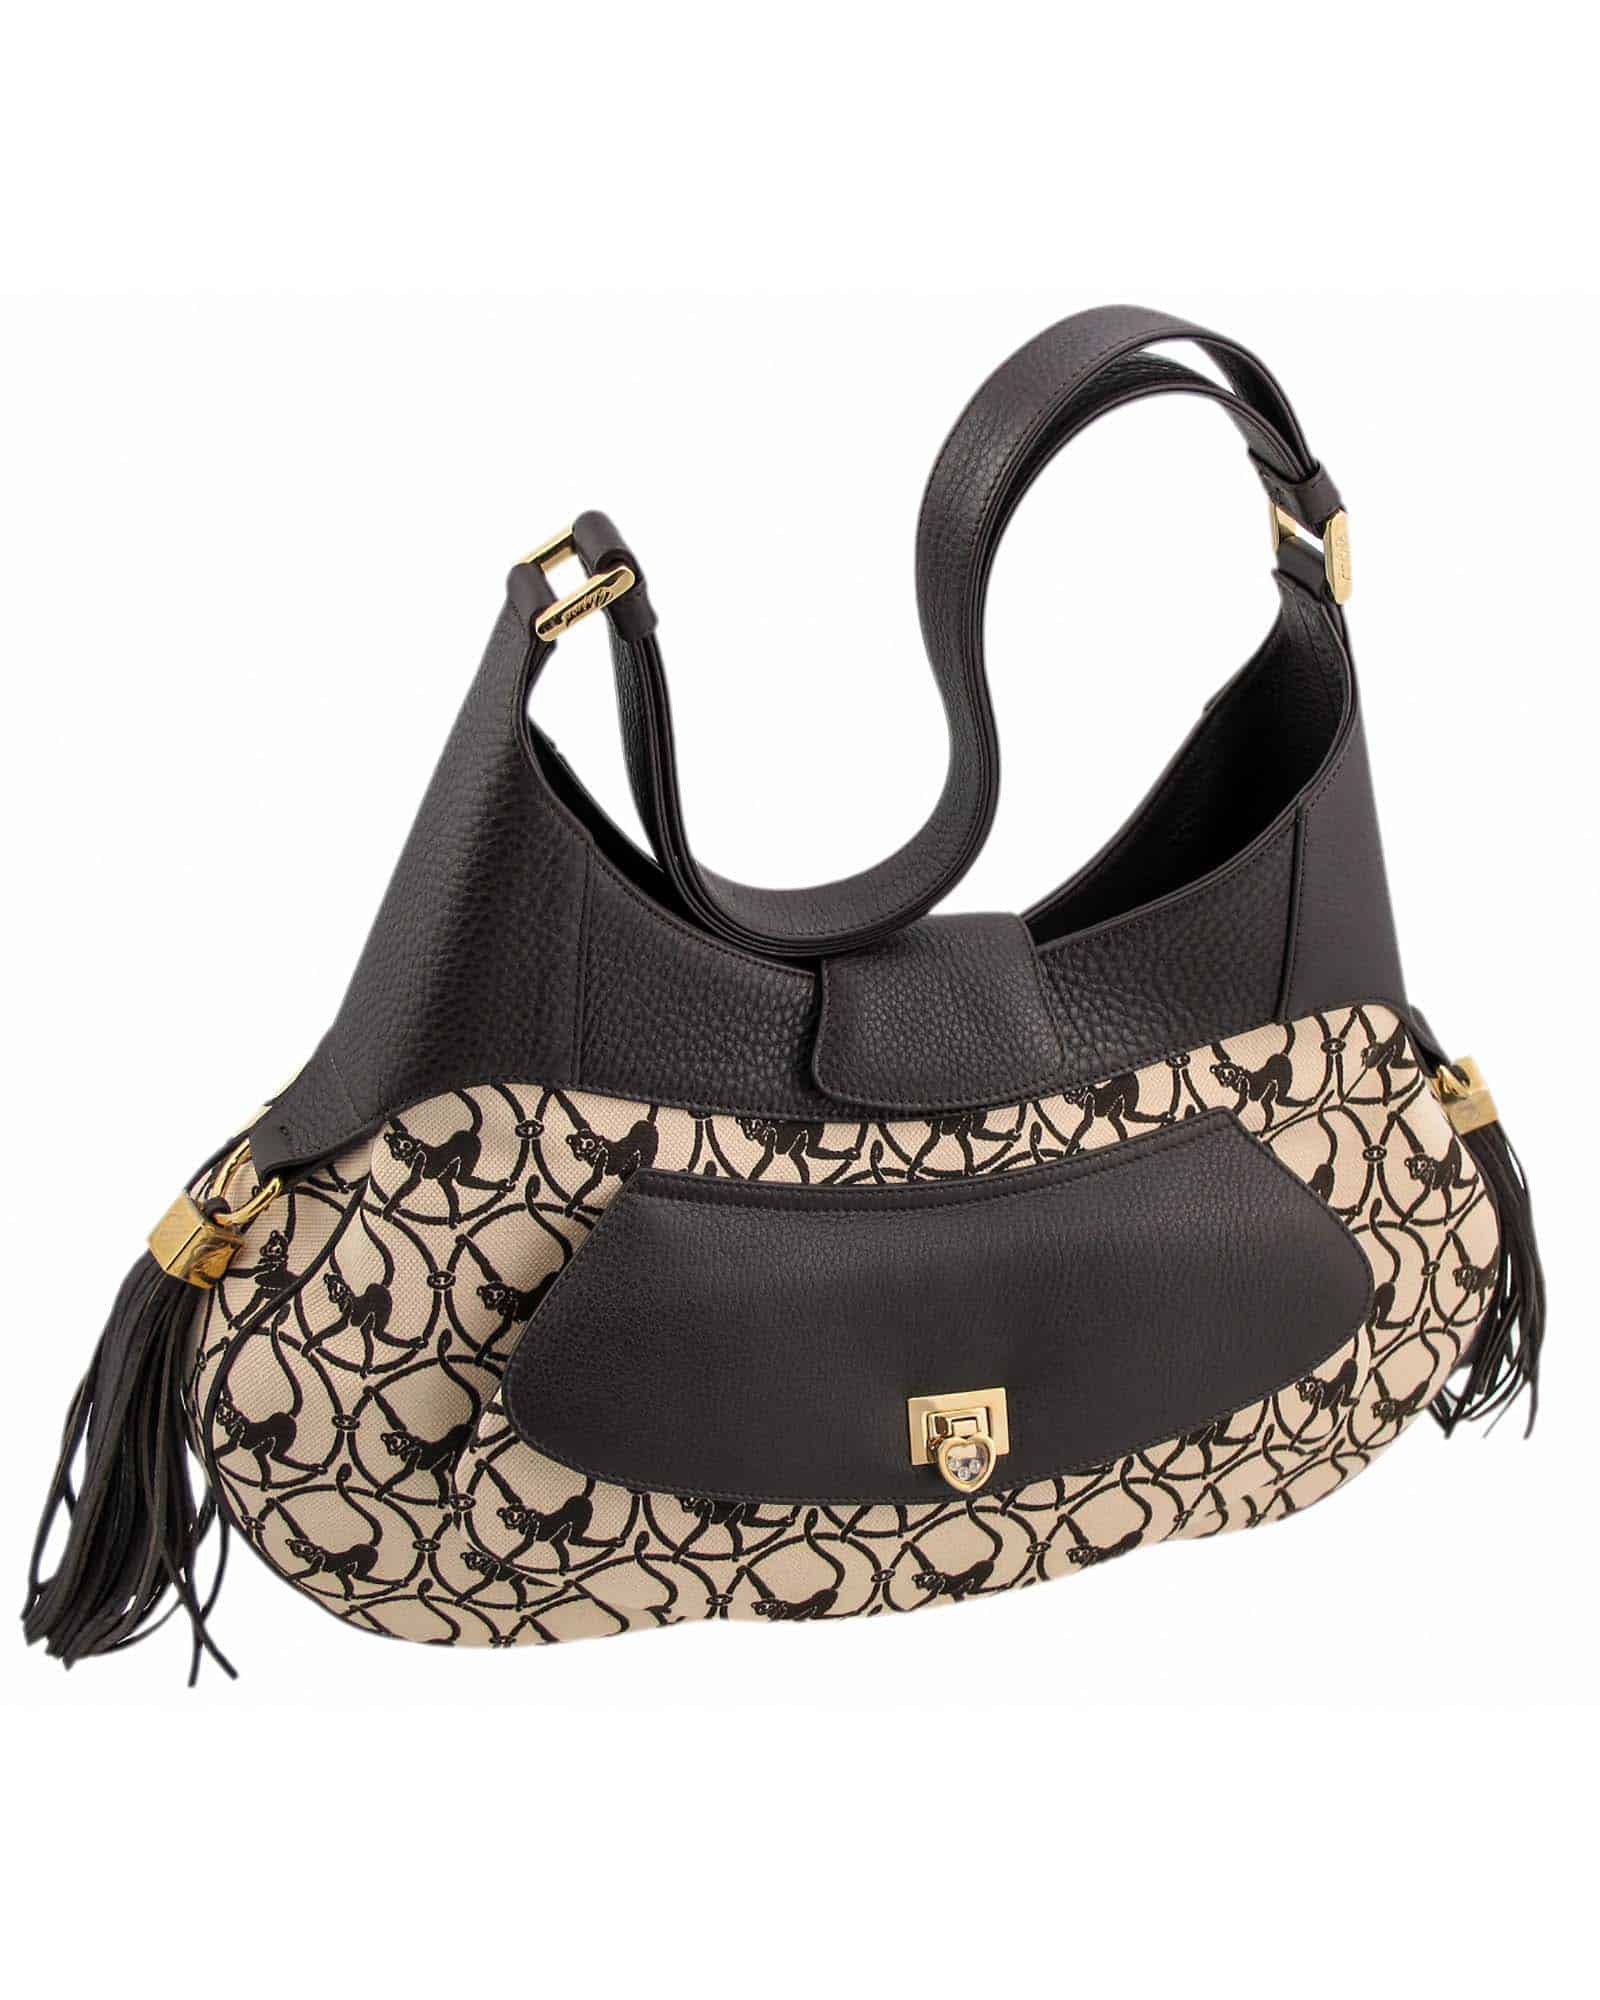 CHOPARD Madrid Bag, Brown Cloth And Brown Leather 95000-0308